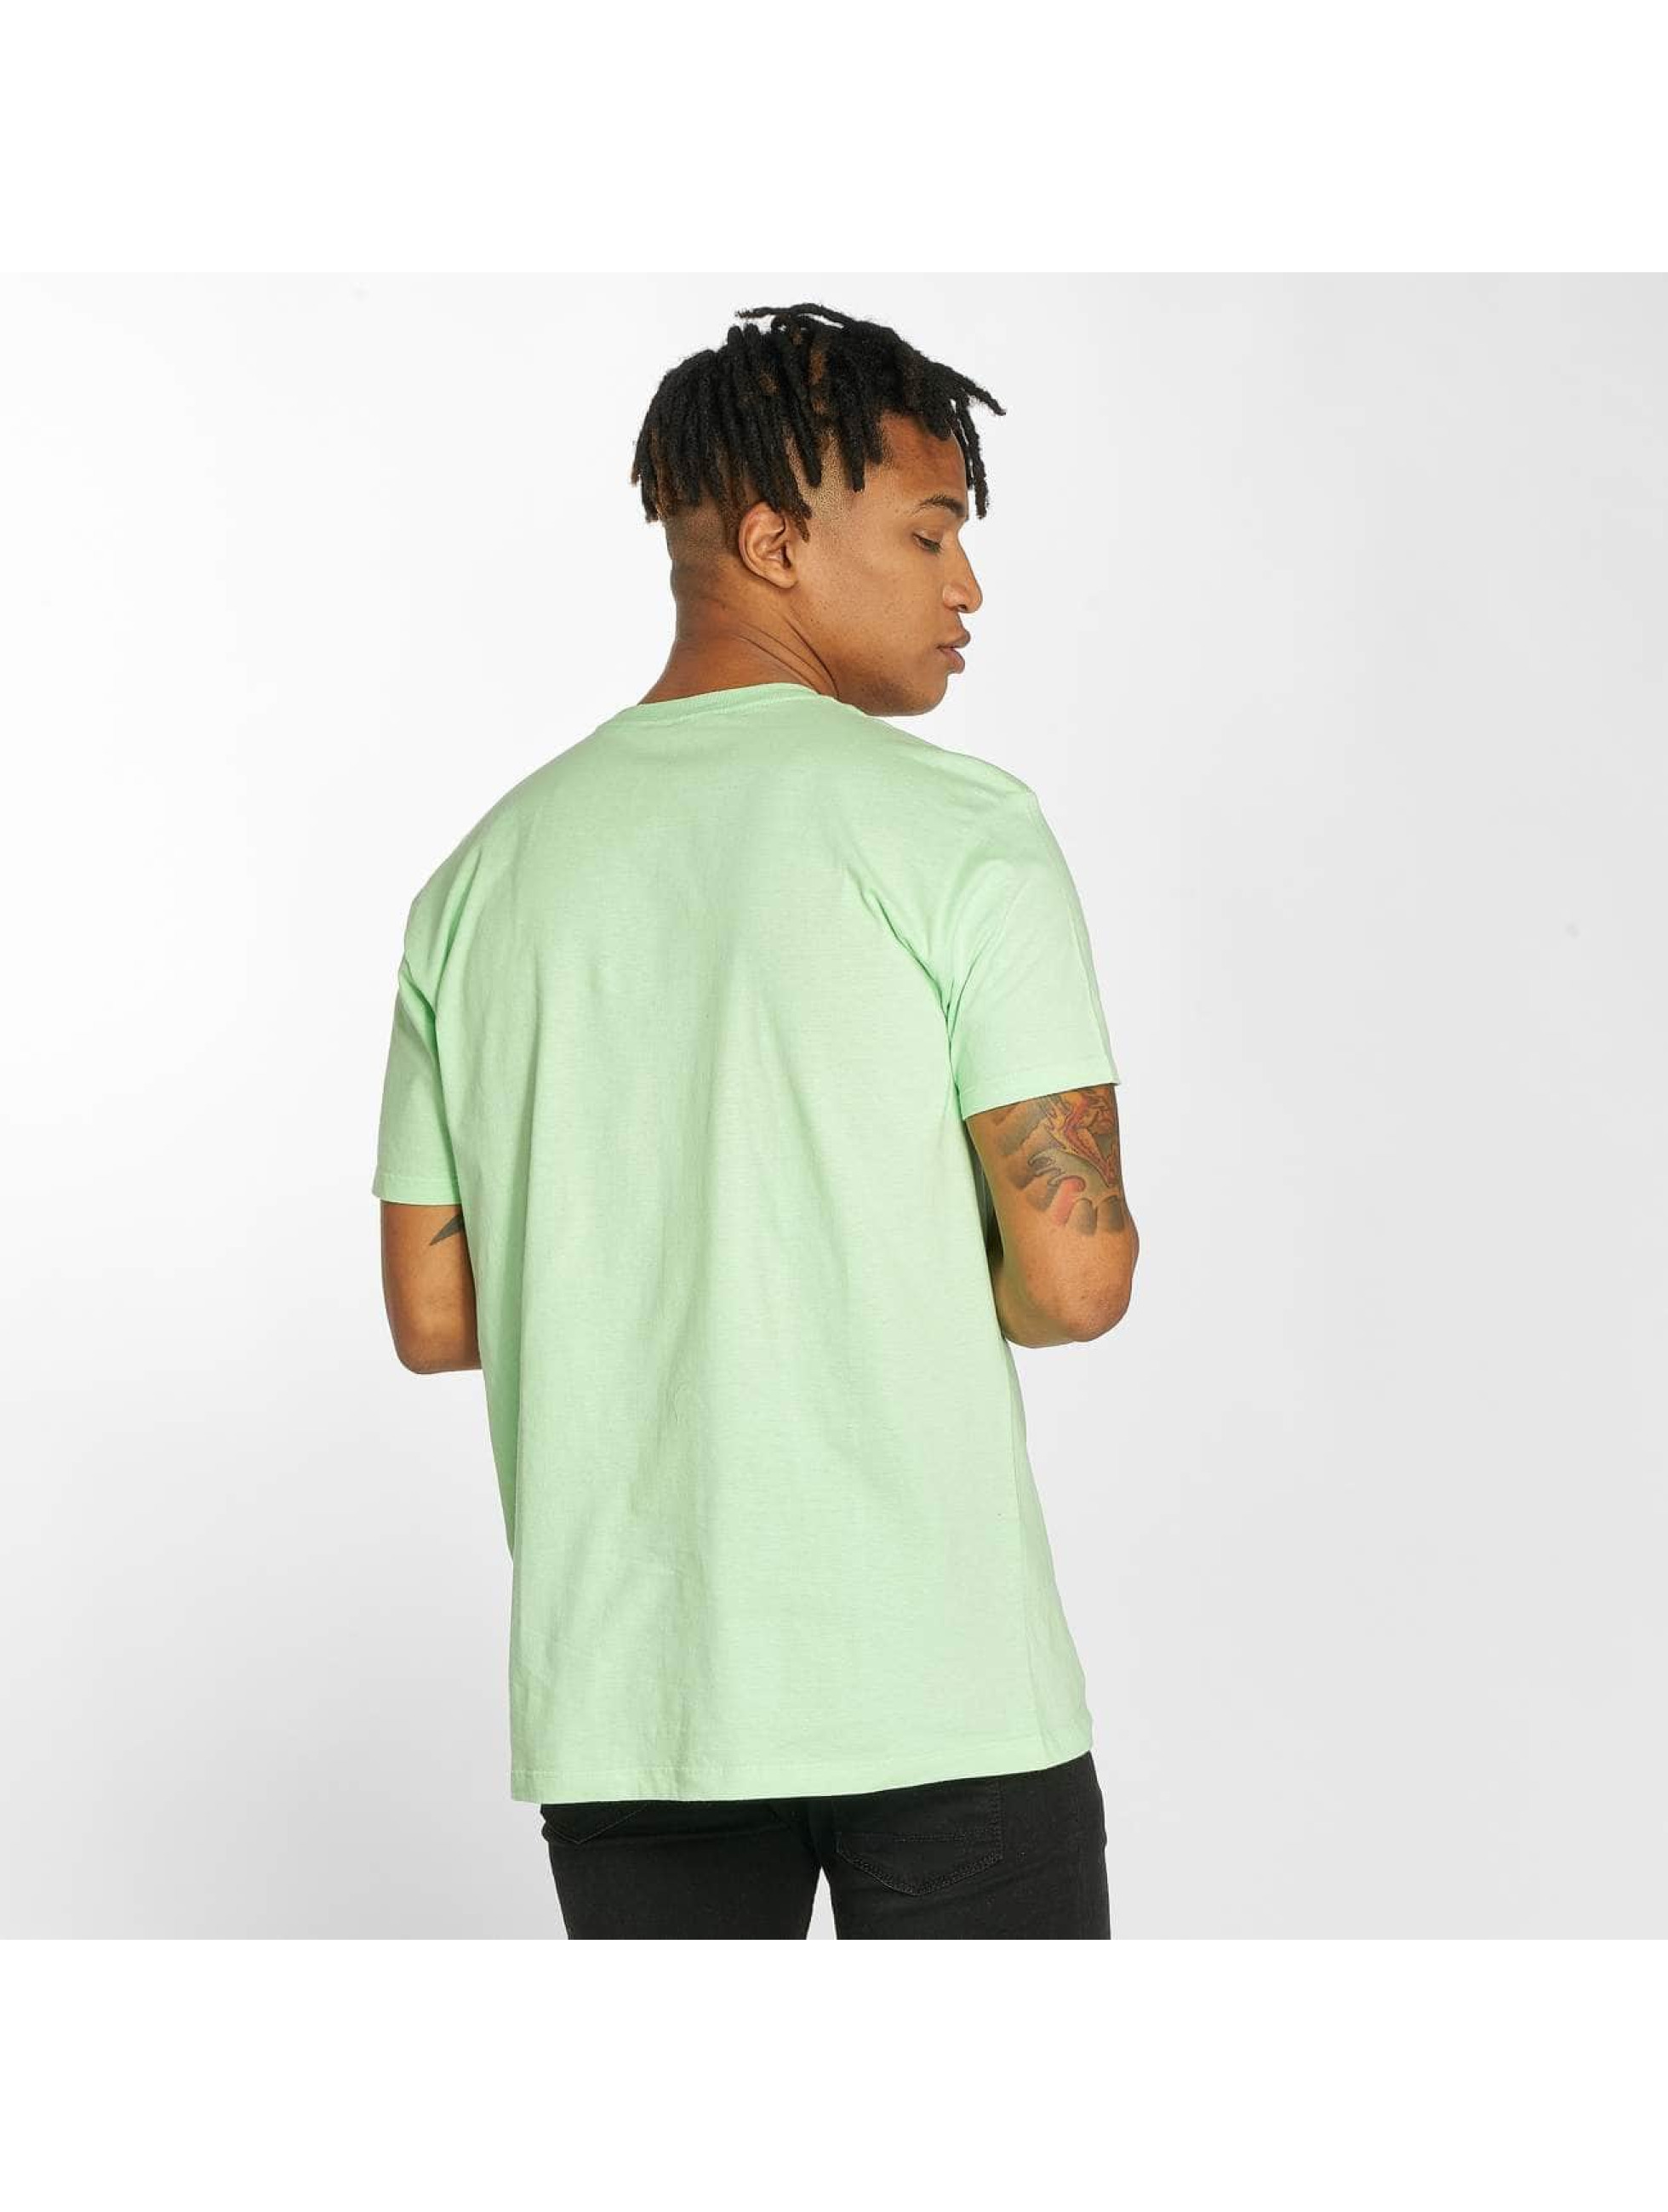 Etnies T-Shirt New Box green